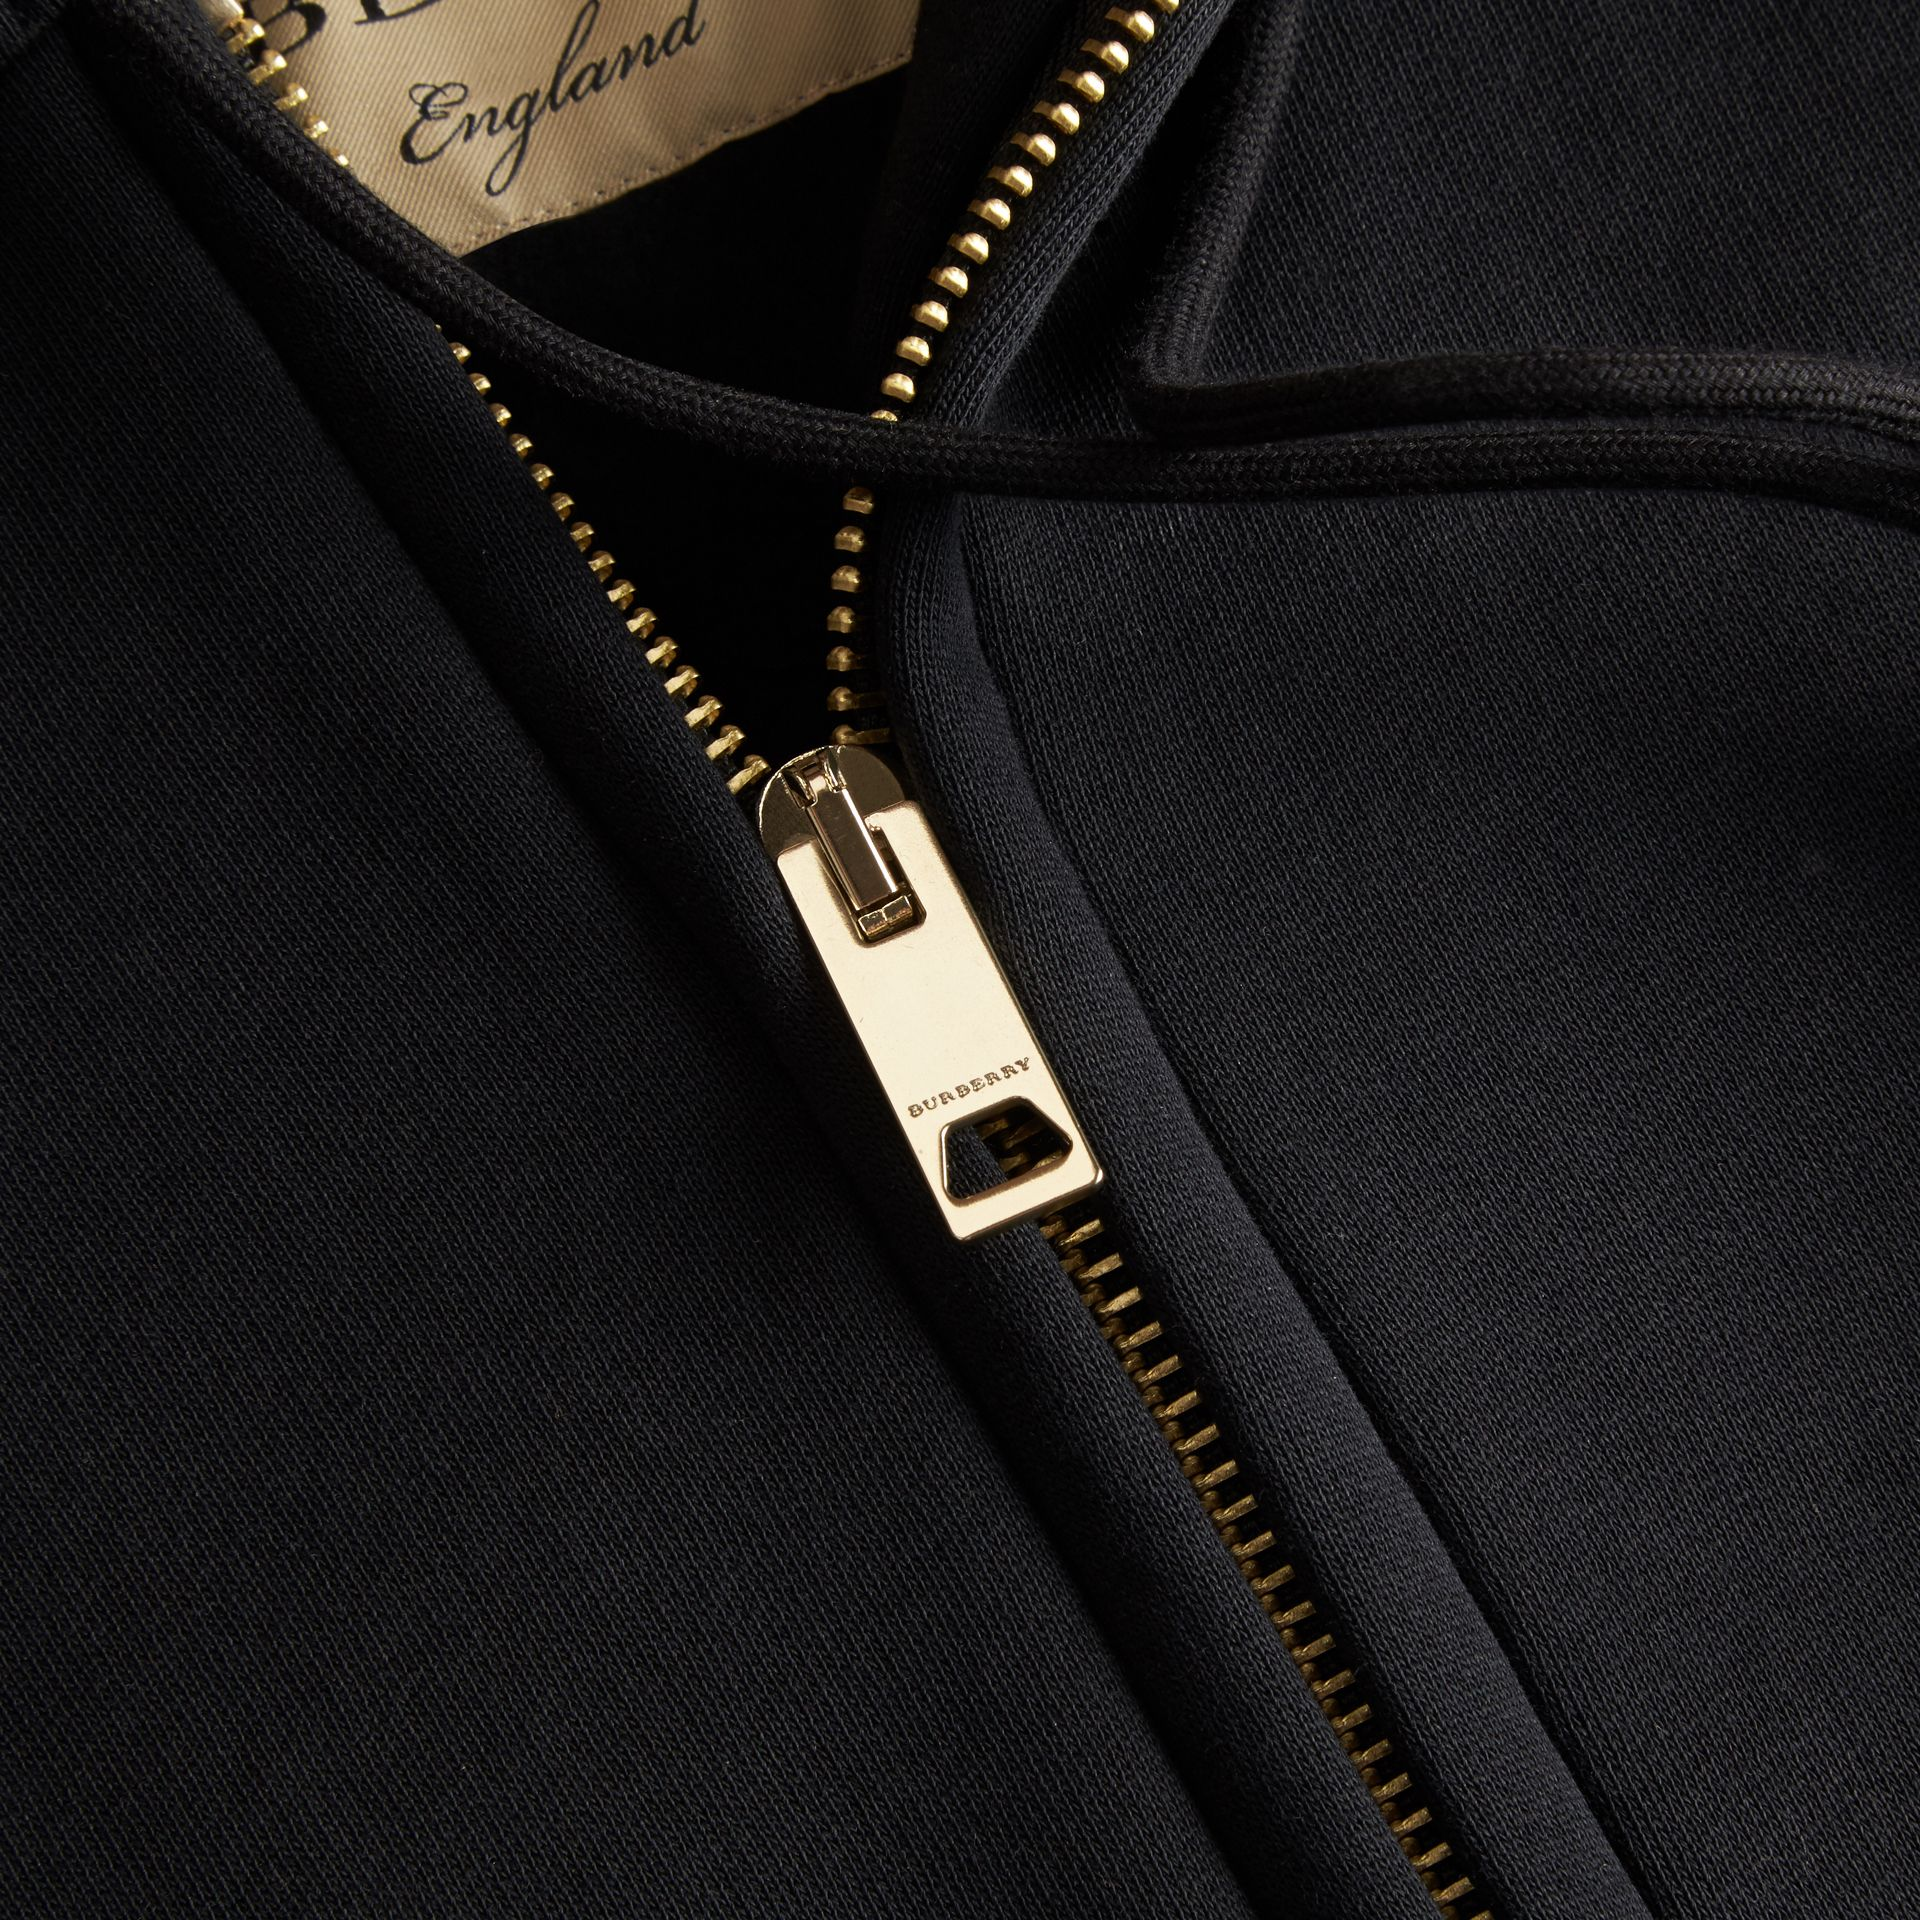 Black Hooded Zip-front Cotton Blend Sweatshirt Black - gallery image 2